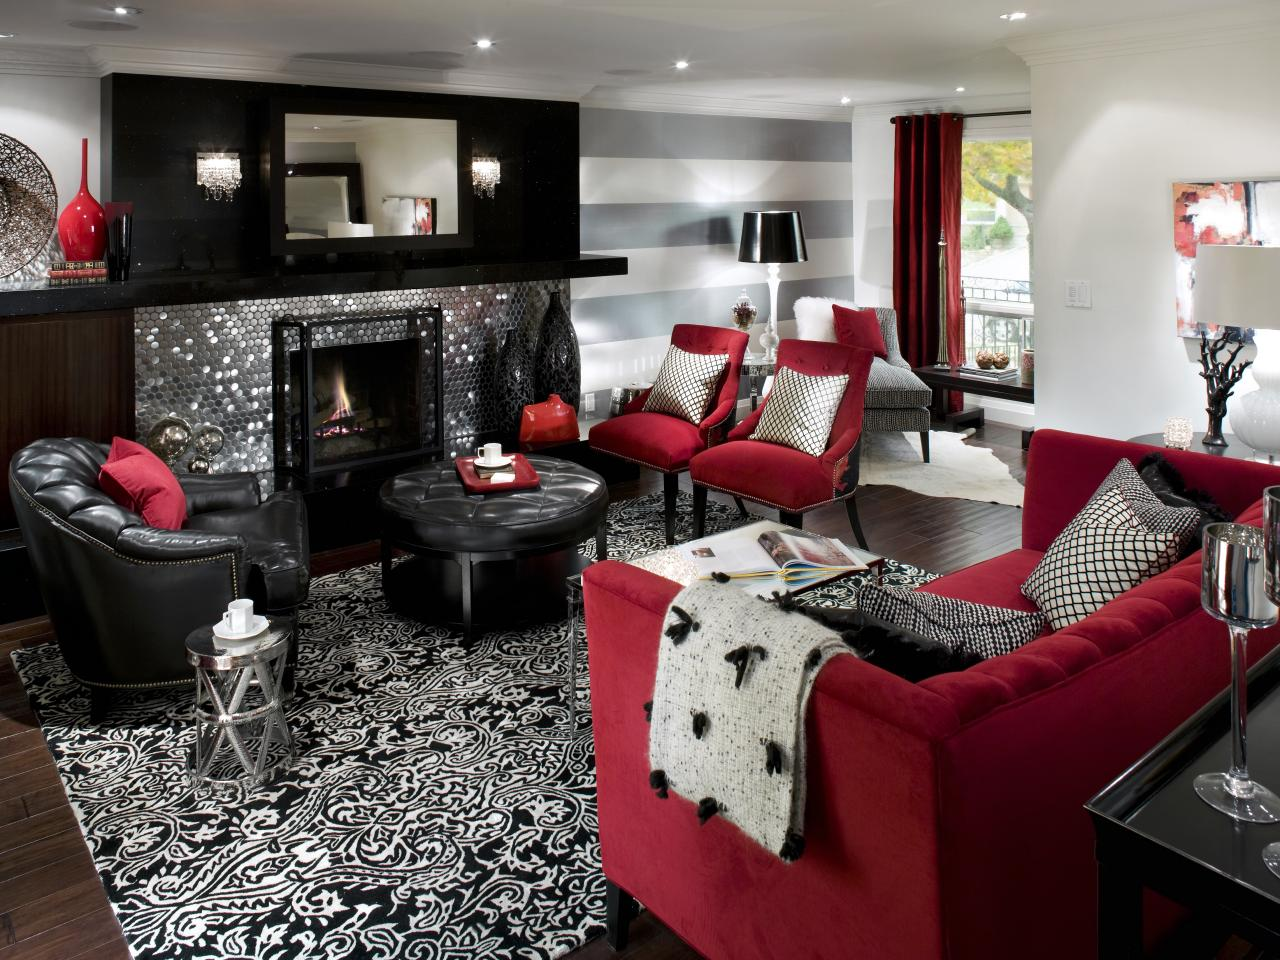 Retro Red, Black and White Family Room | HGTV